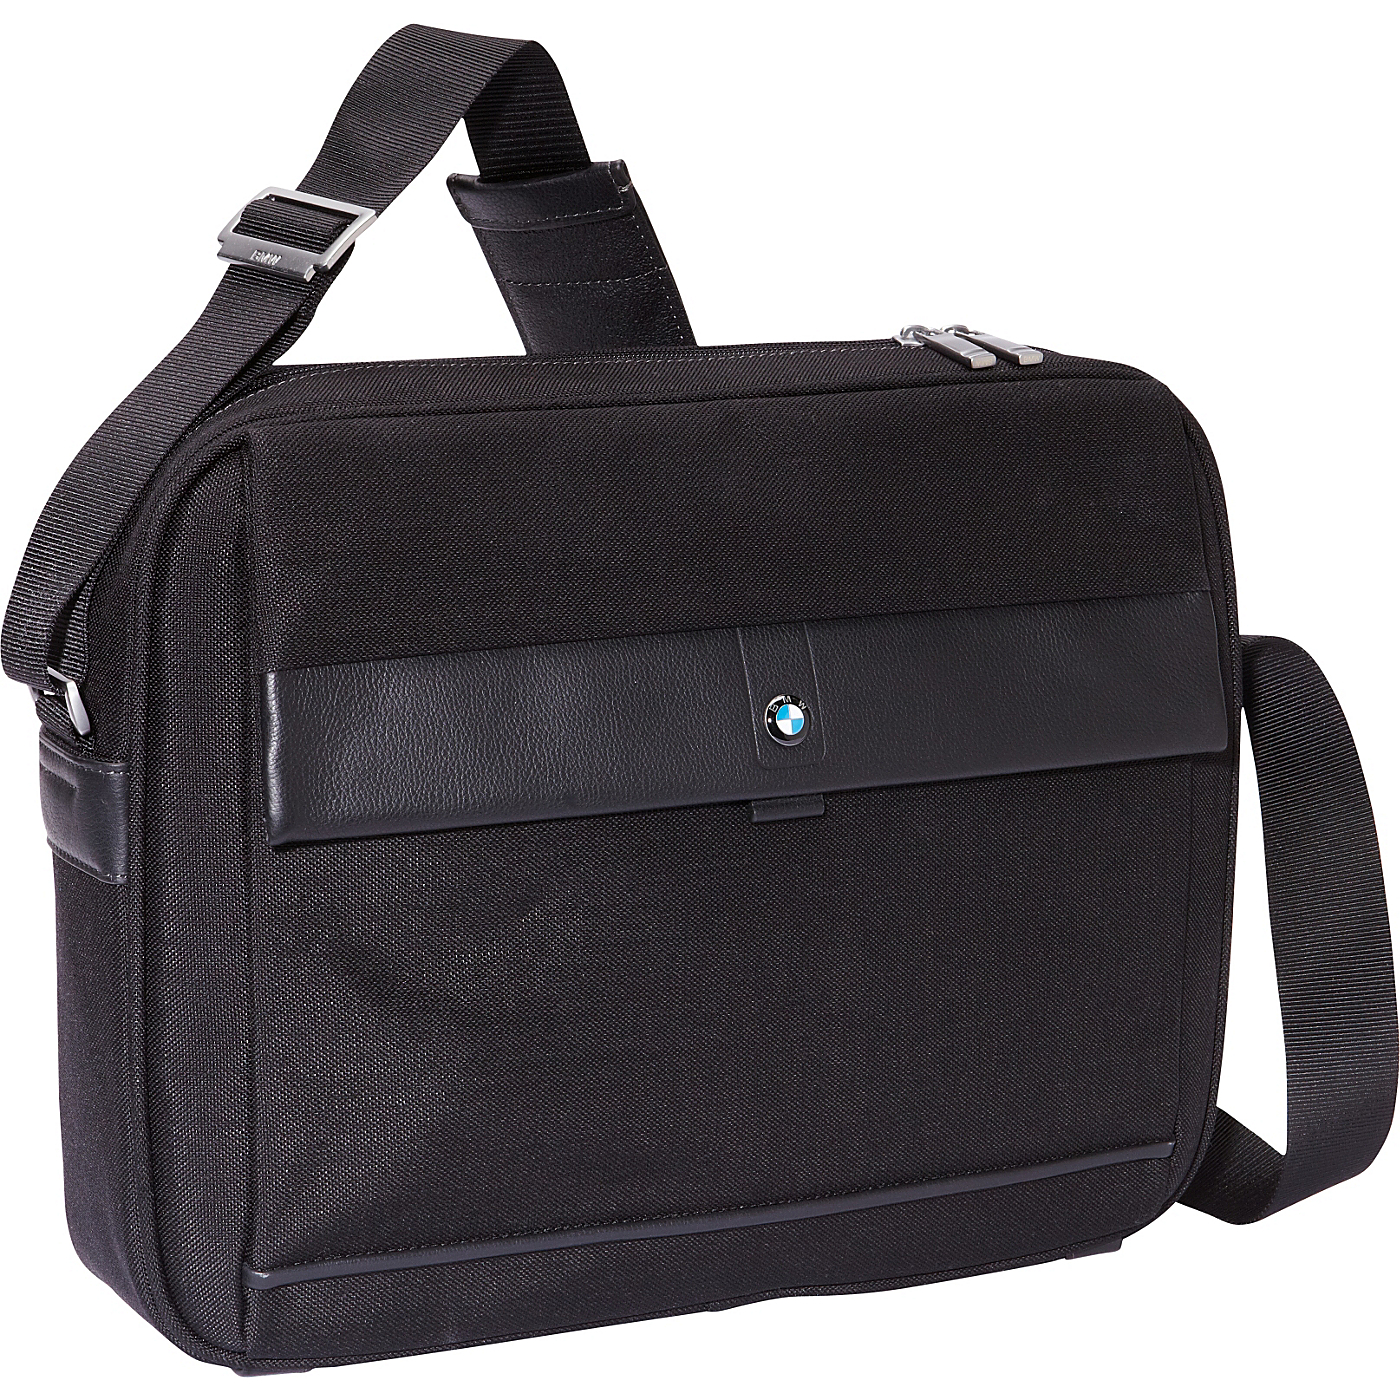 Notebook Case Black   BMW Luggage Non Wheeled Computer Cases